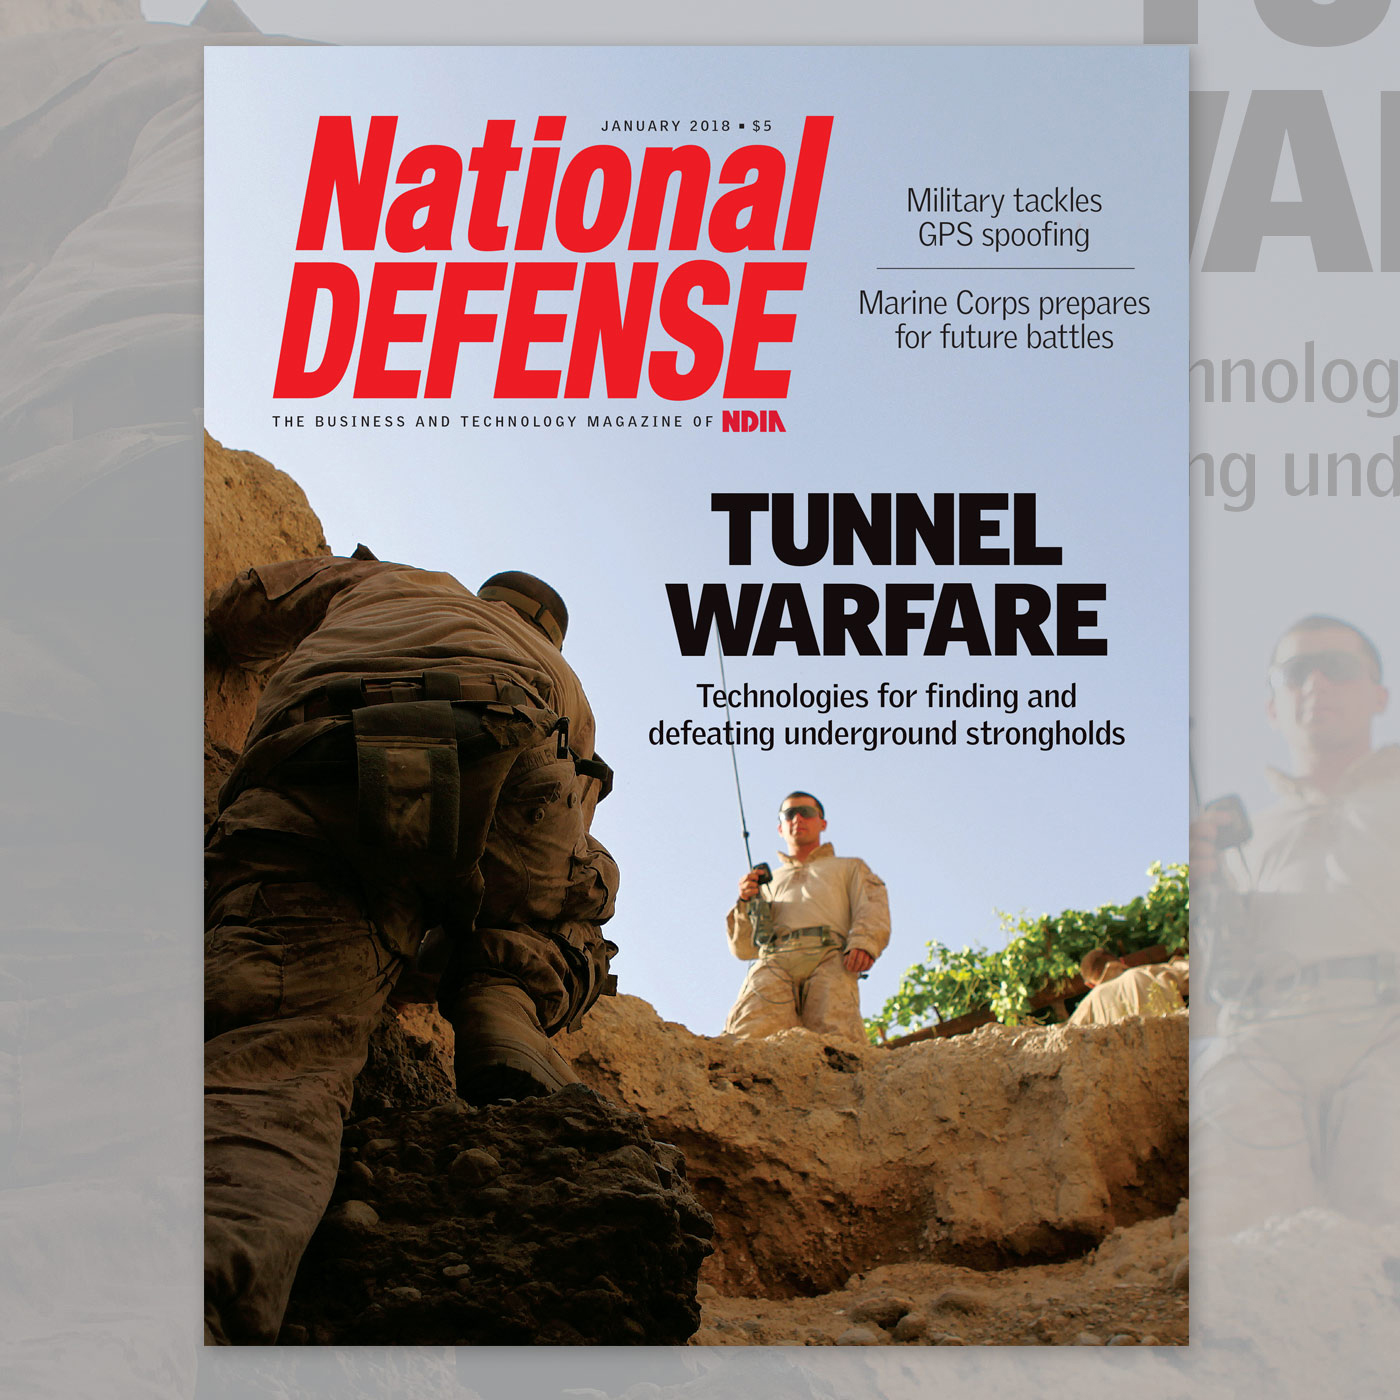 Artwork for January 2018 - Tunnel Warfare: Technologies for finding and defeating underground strongholds